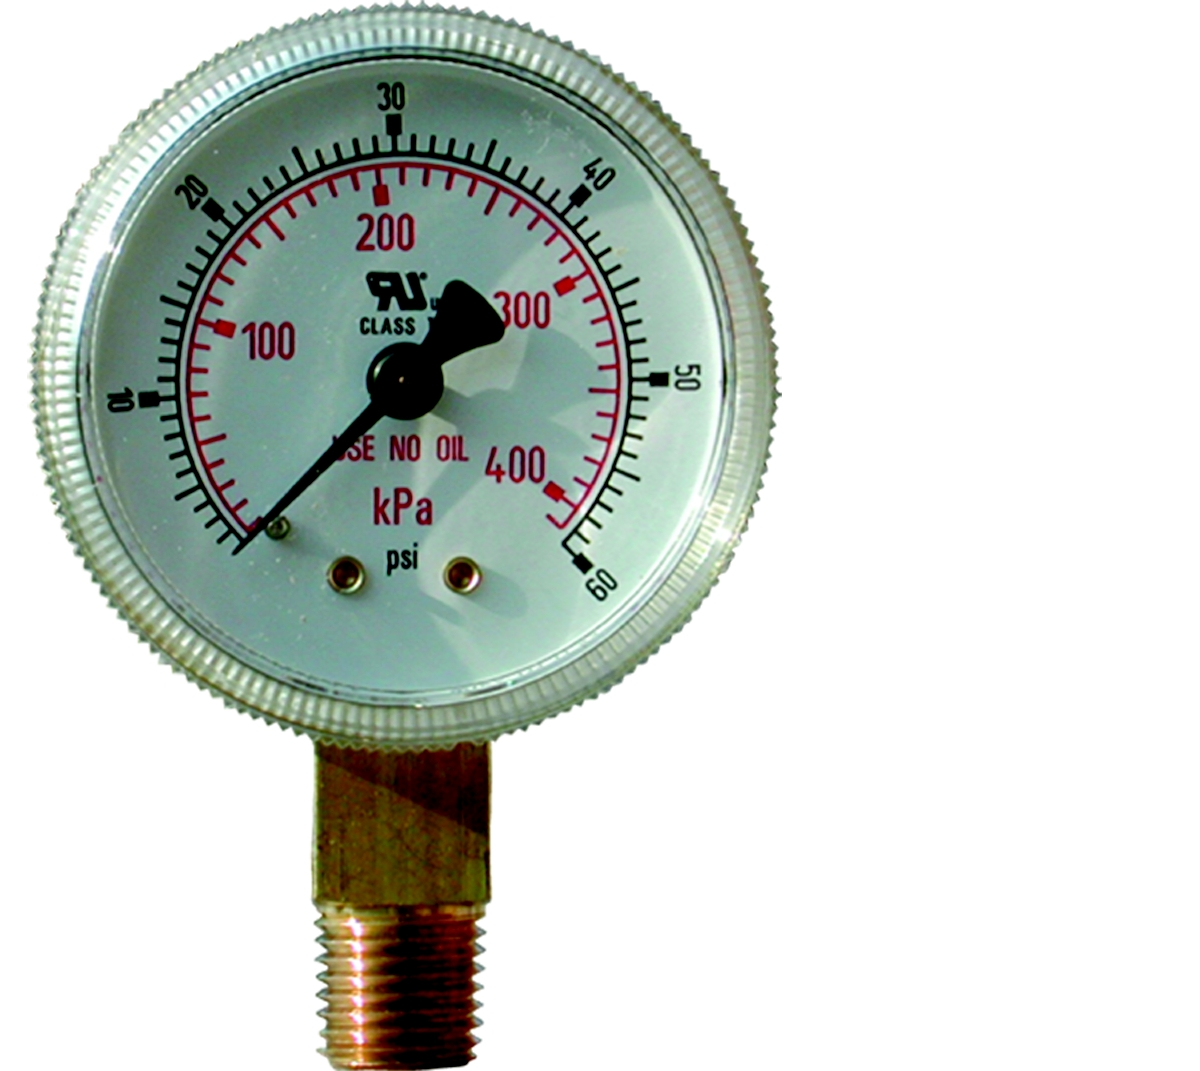 PicturesCategory/Pressure Gauges.jpg